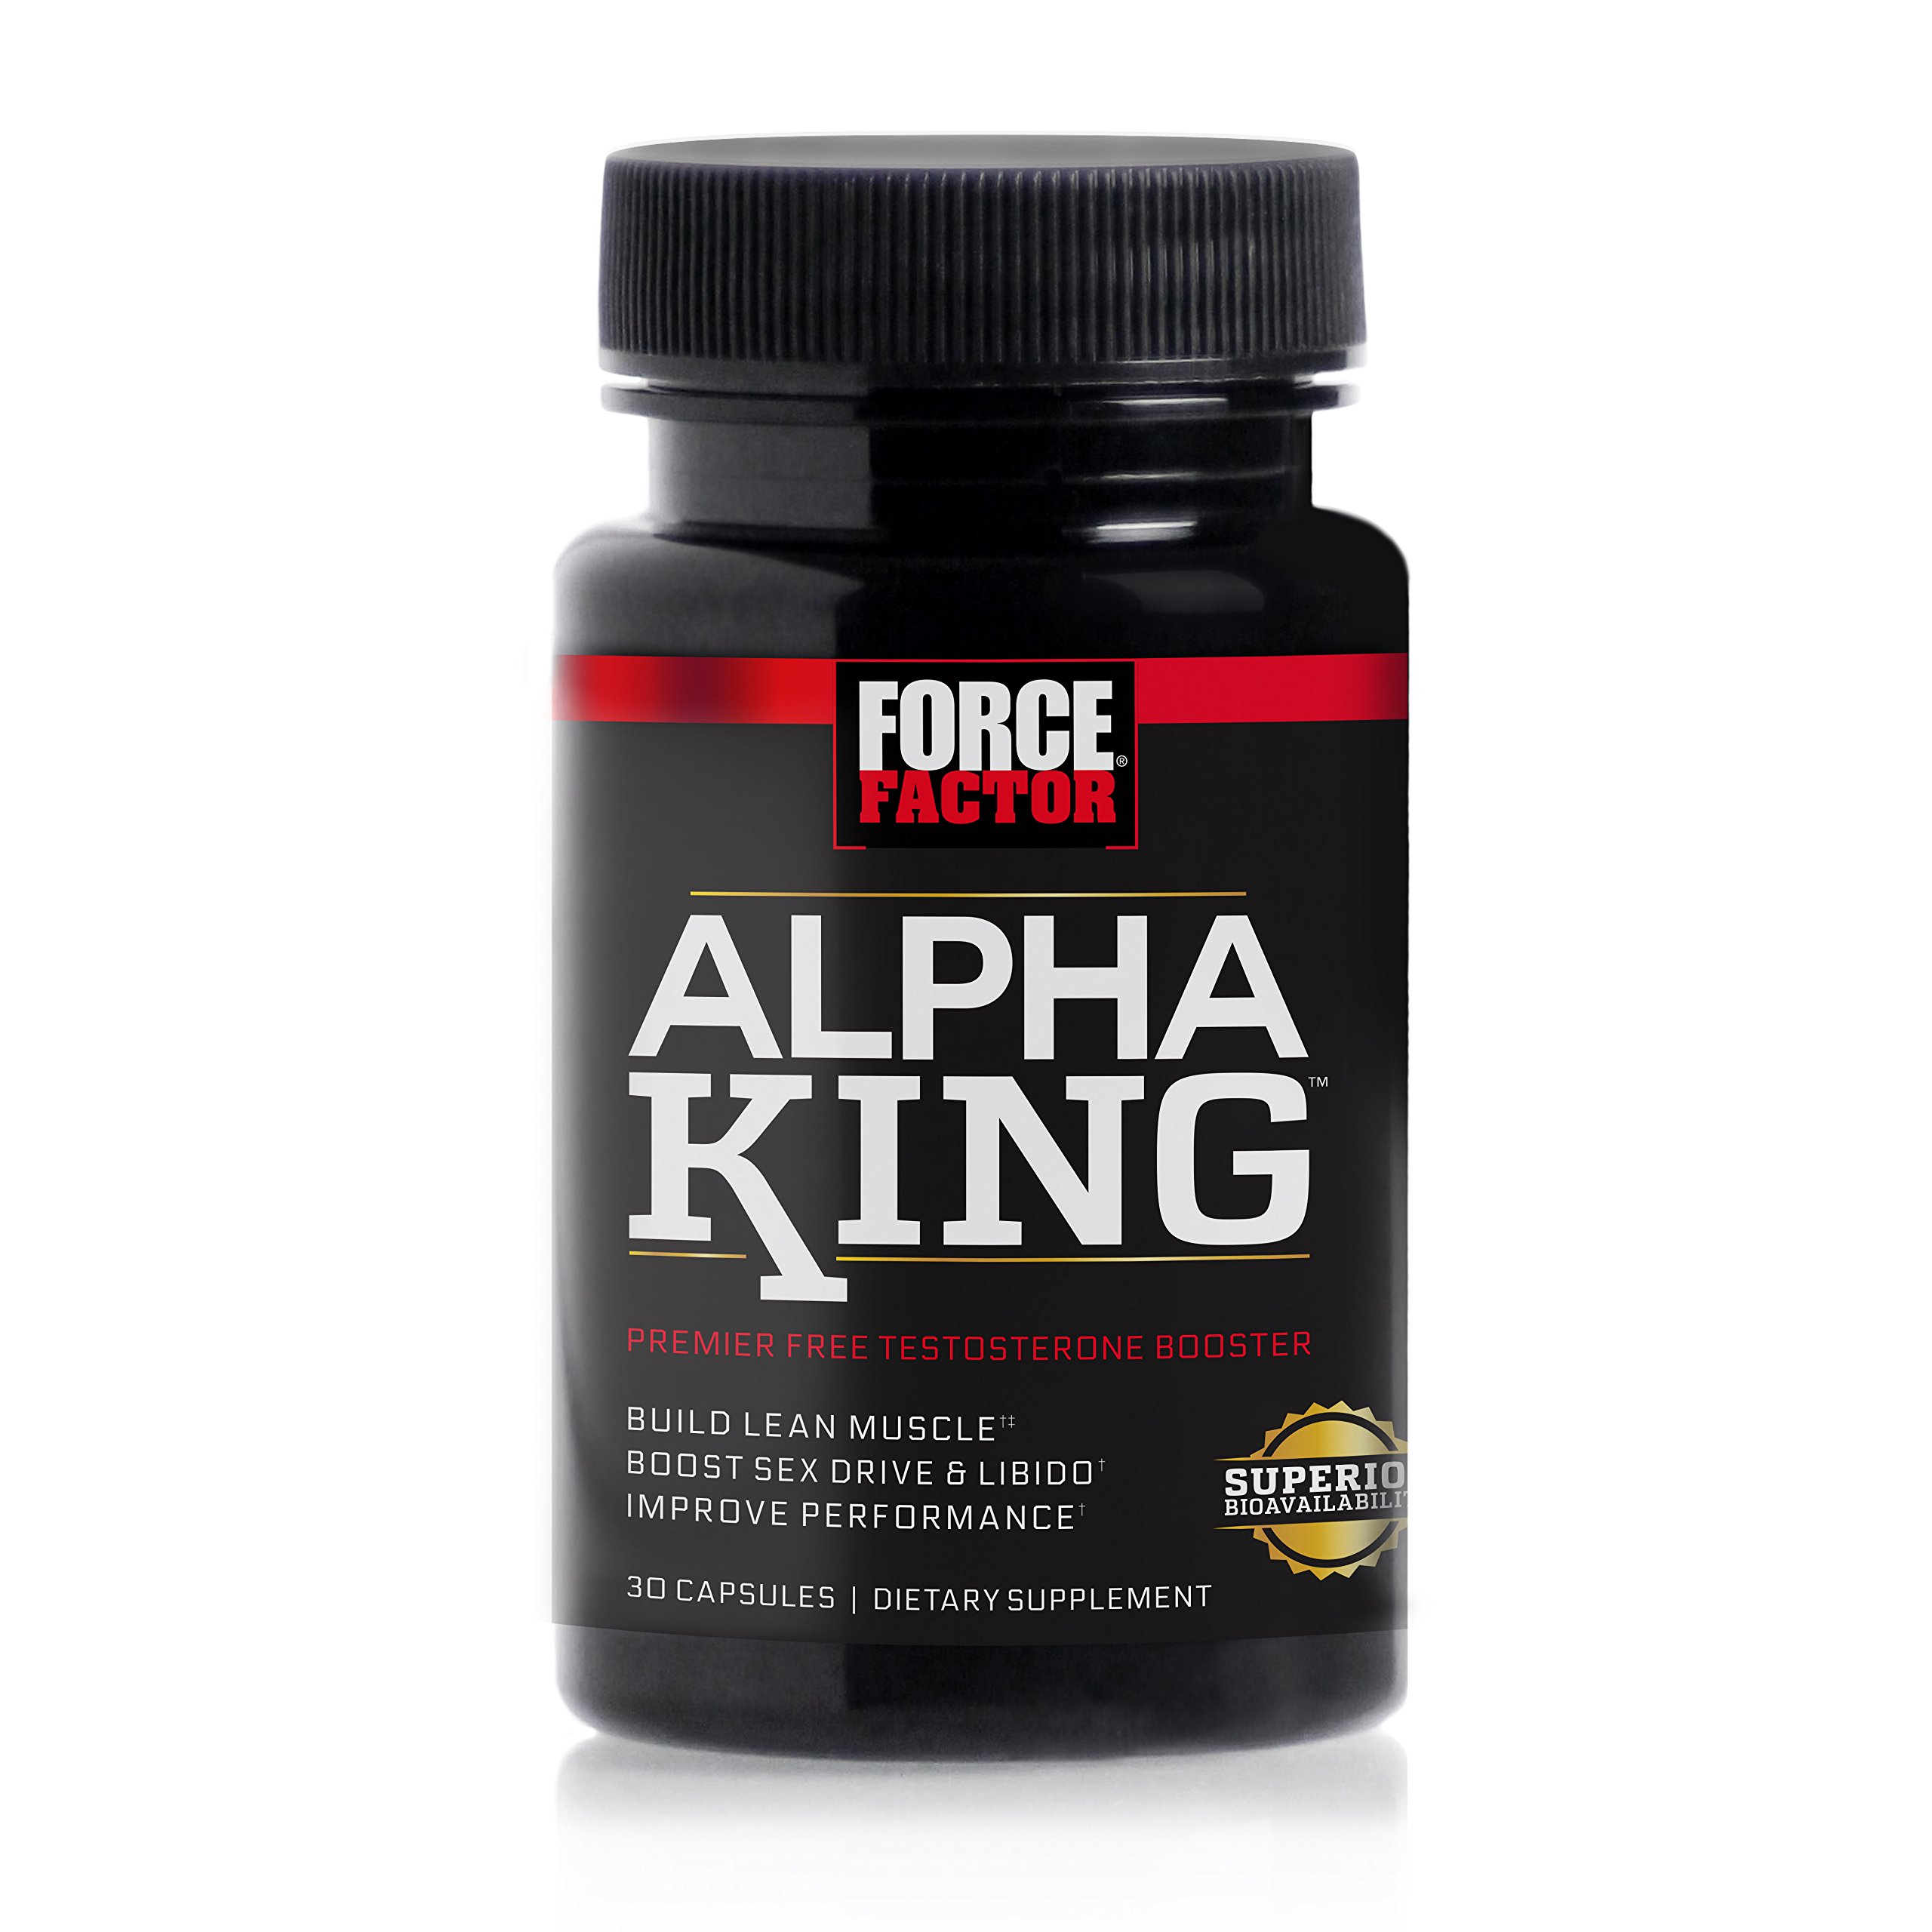 Alpha King Free Testosterone Booster Featuring AlphaFen to Increase Passion & Drive, Build Lean Muscle, & Improve Performance, Force Factor, 30 Count